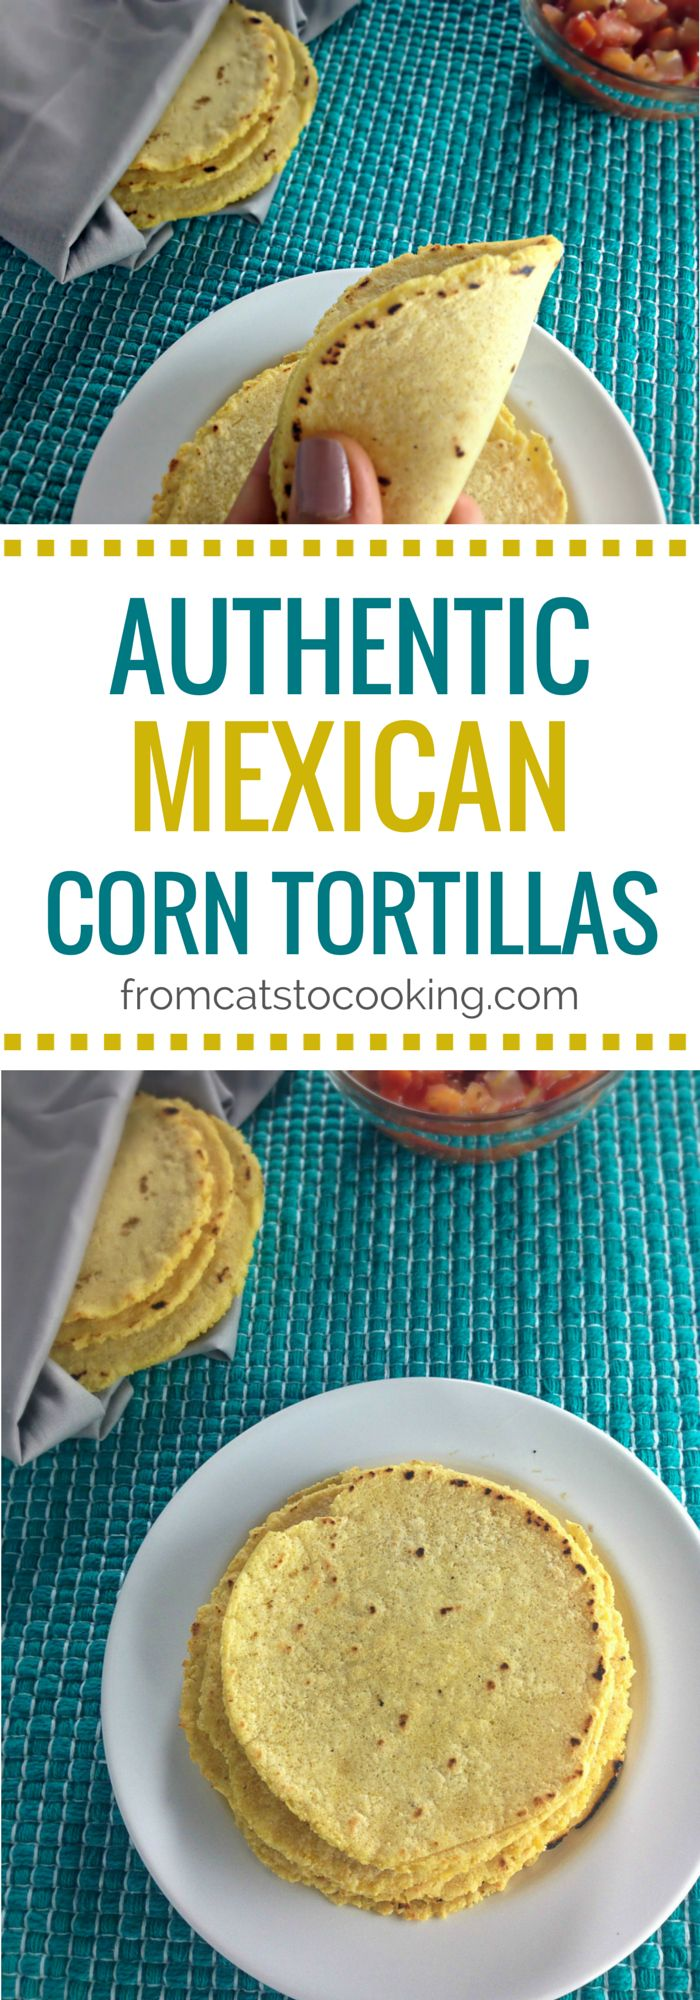 Authentic Mexican Corn Tortillas Recipe | fromcatstocooking.com